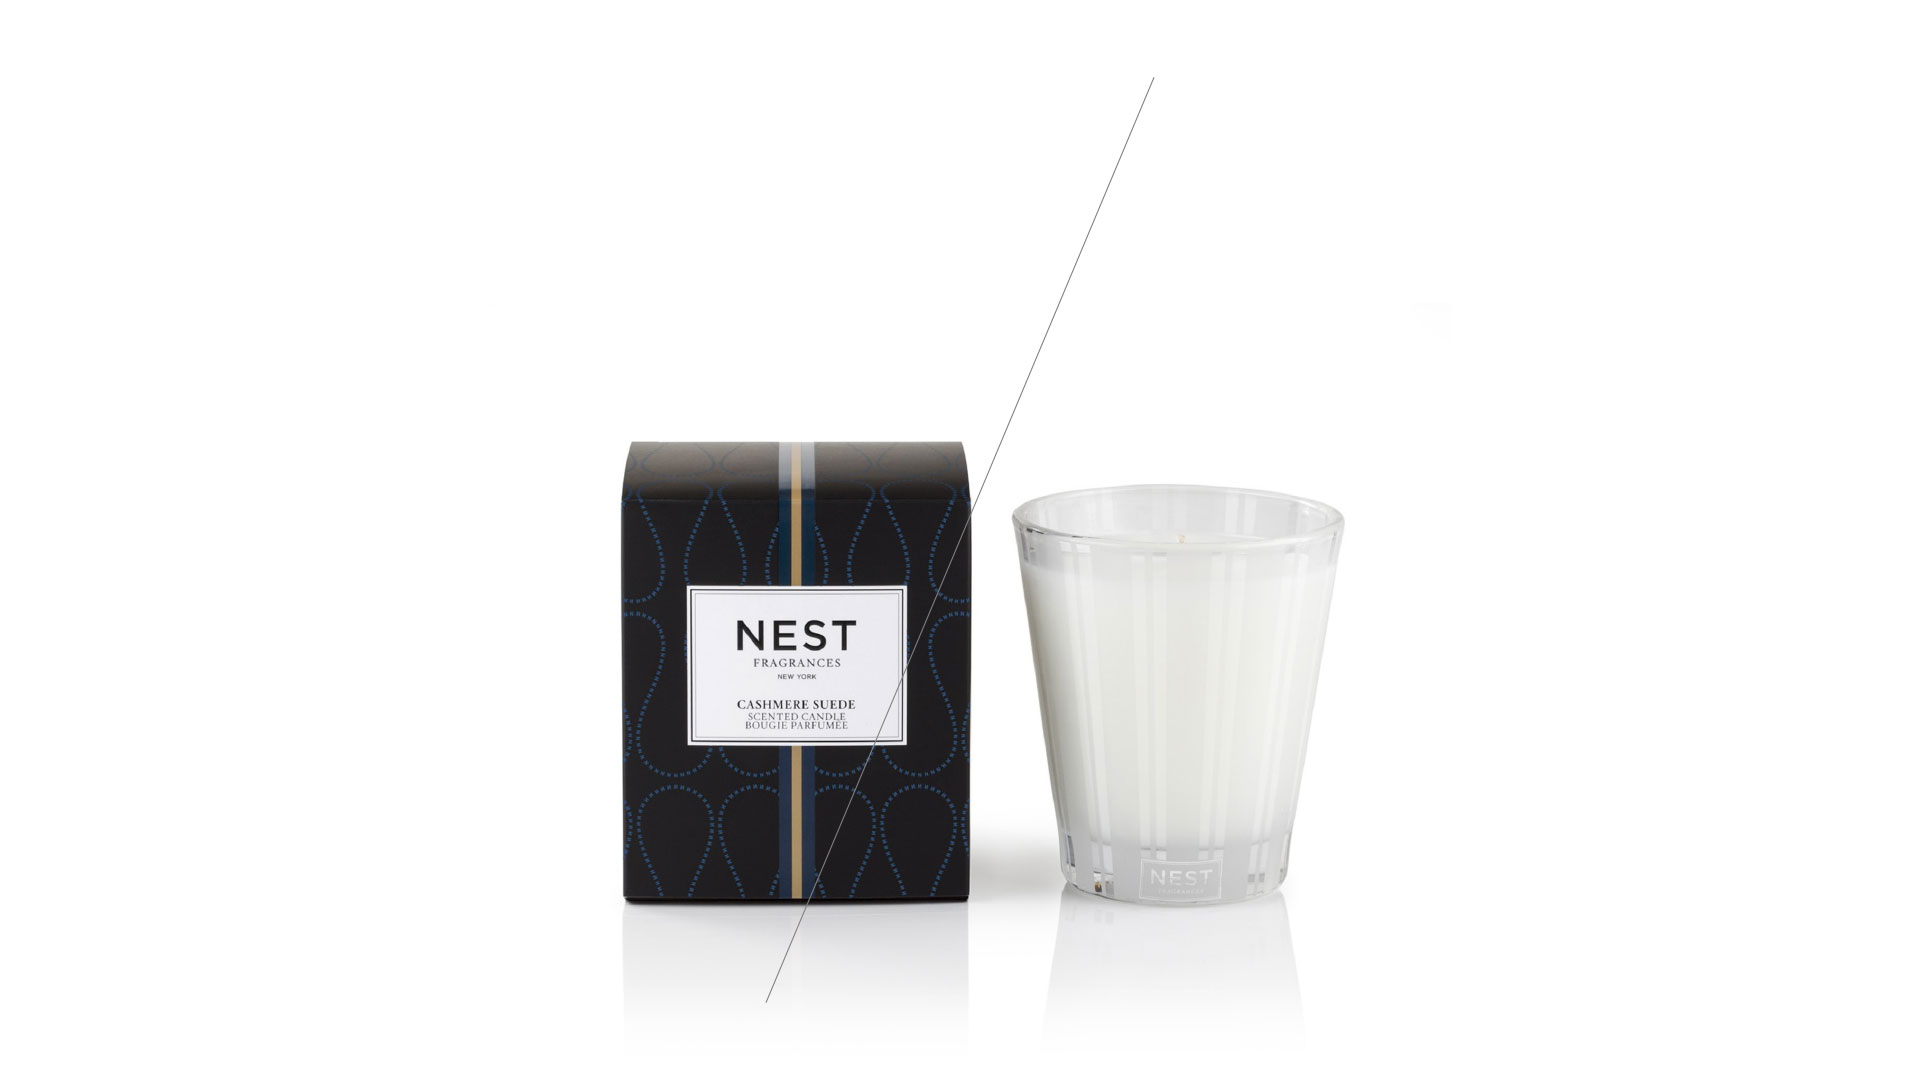 NEST Cashmere Suede Classic Candle -